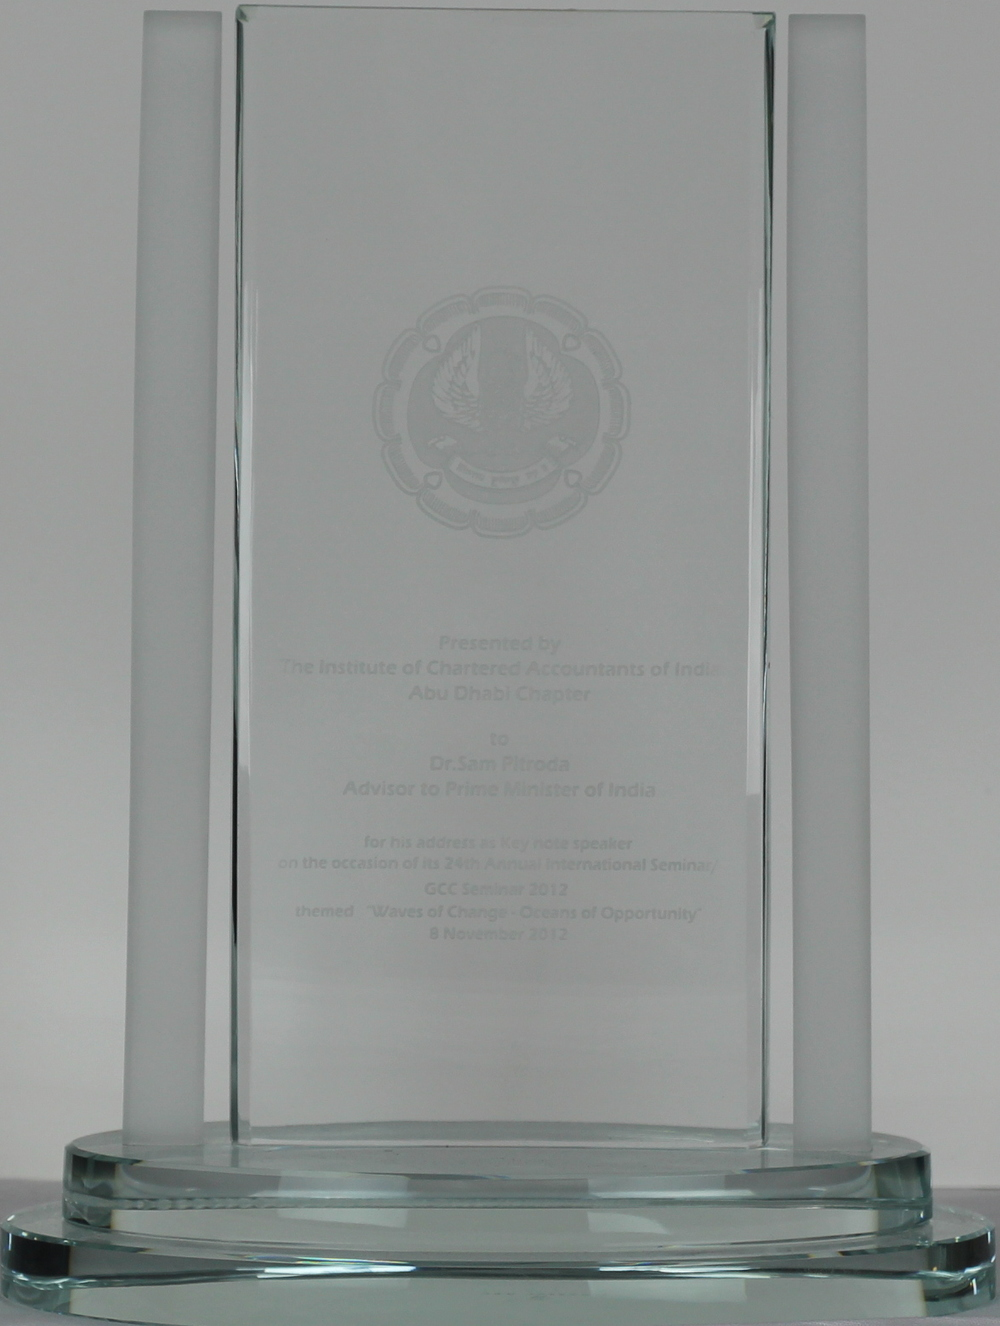 Keynote Speaker Award, Chartered Accountants of India, Abu Dhabi Chapter, 2012